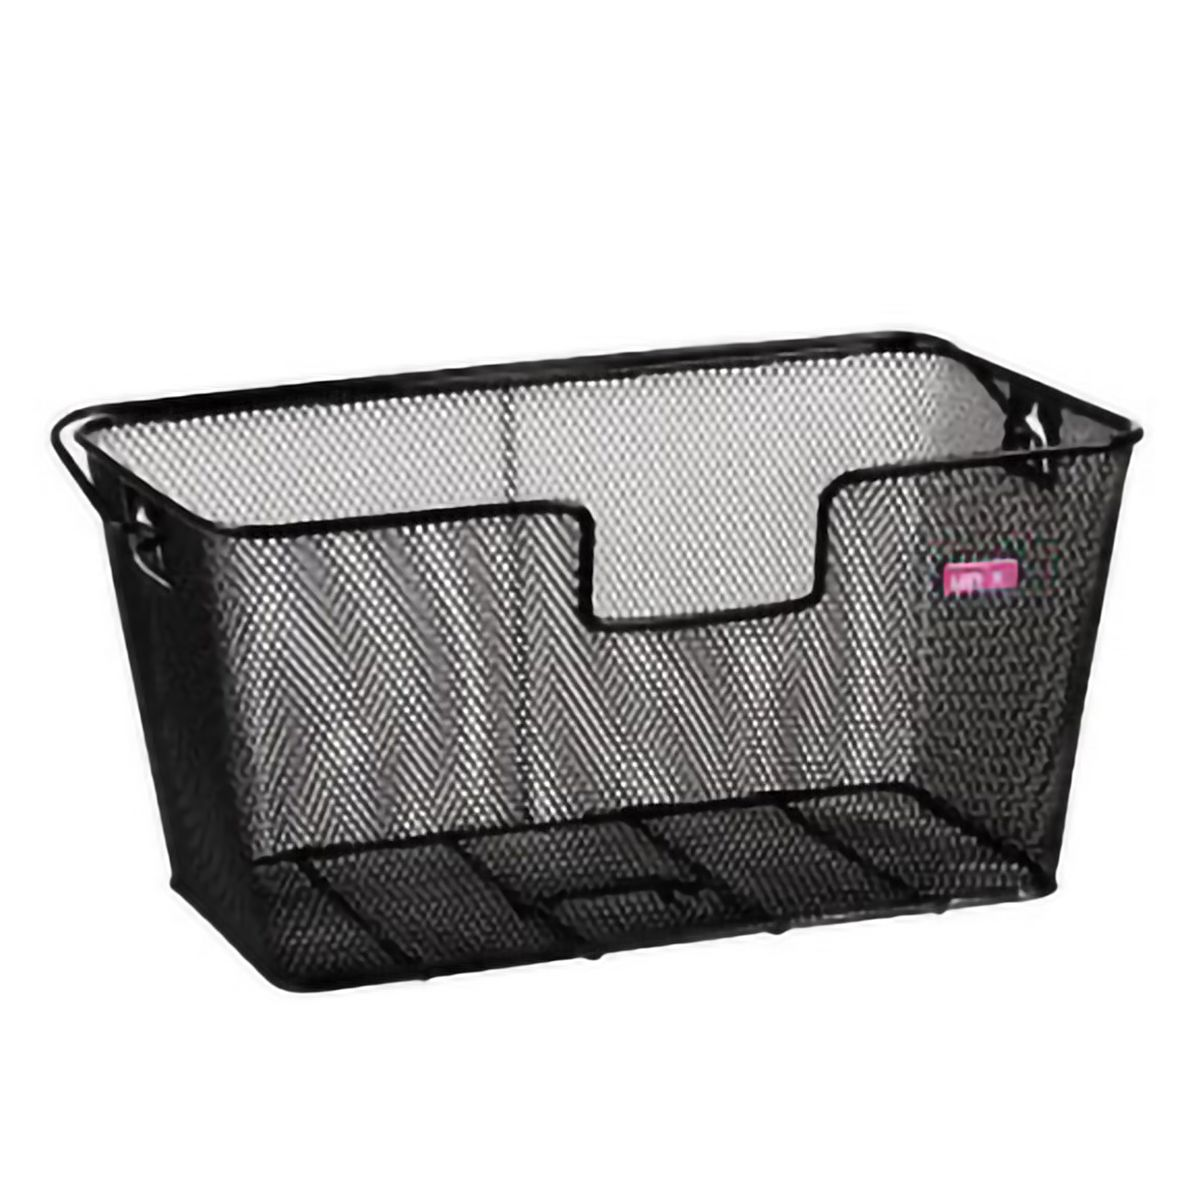 ACACIO rear bicycle basket